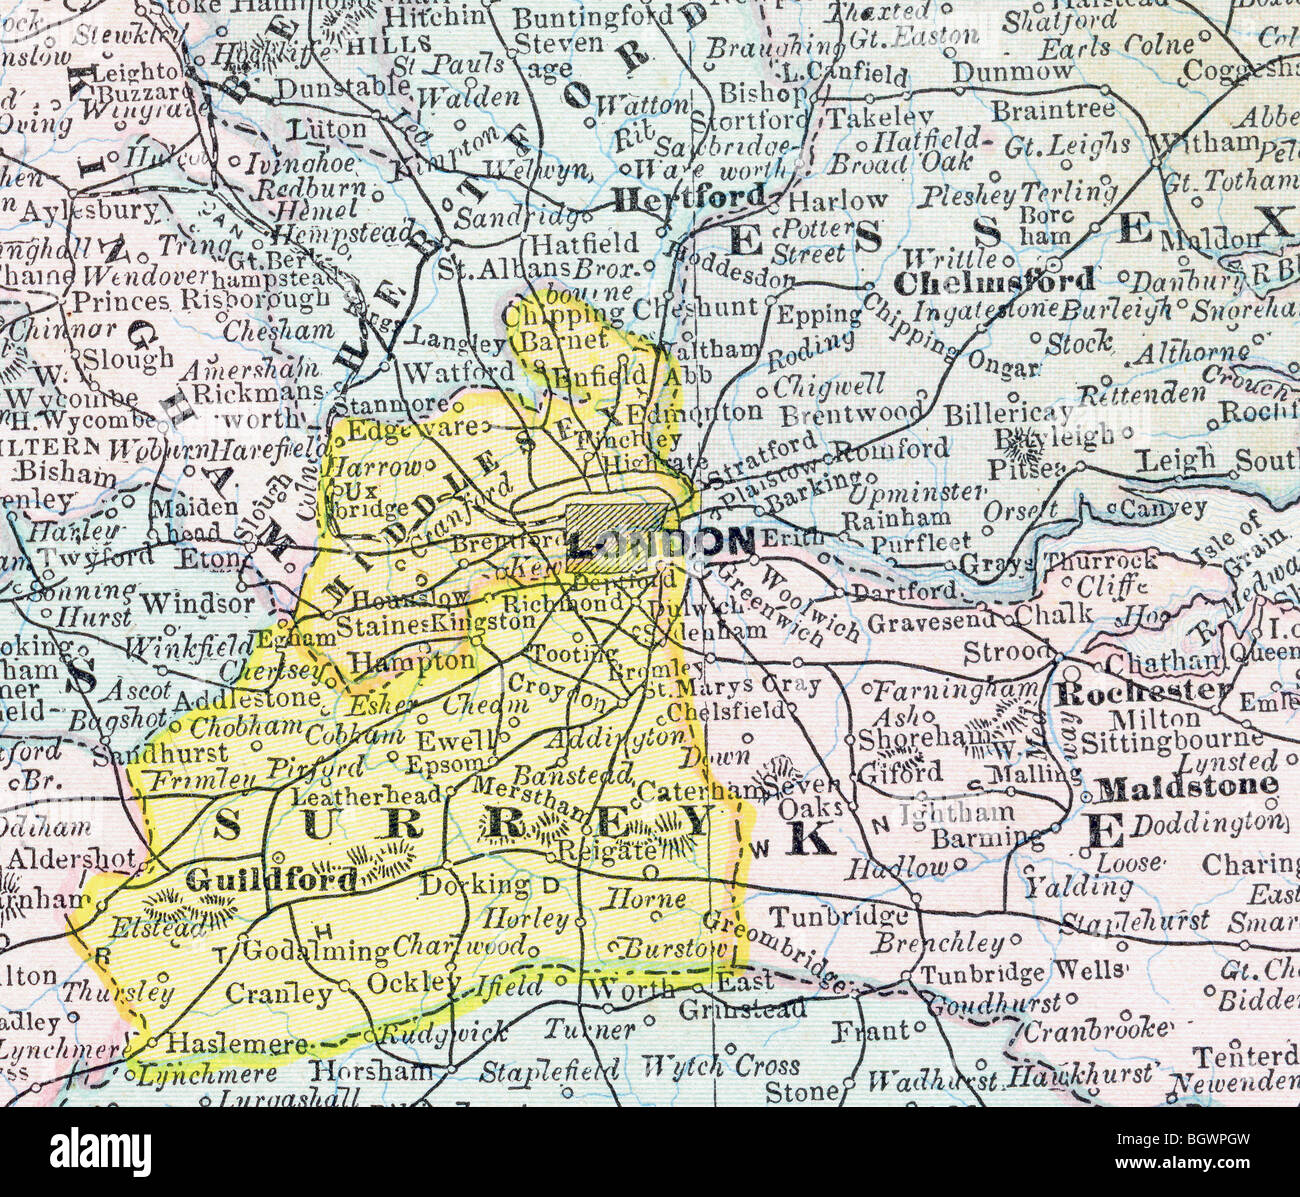 London And Greater London Map.London Map Stock Photos London Map Stock Images Alamy